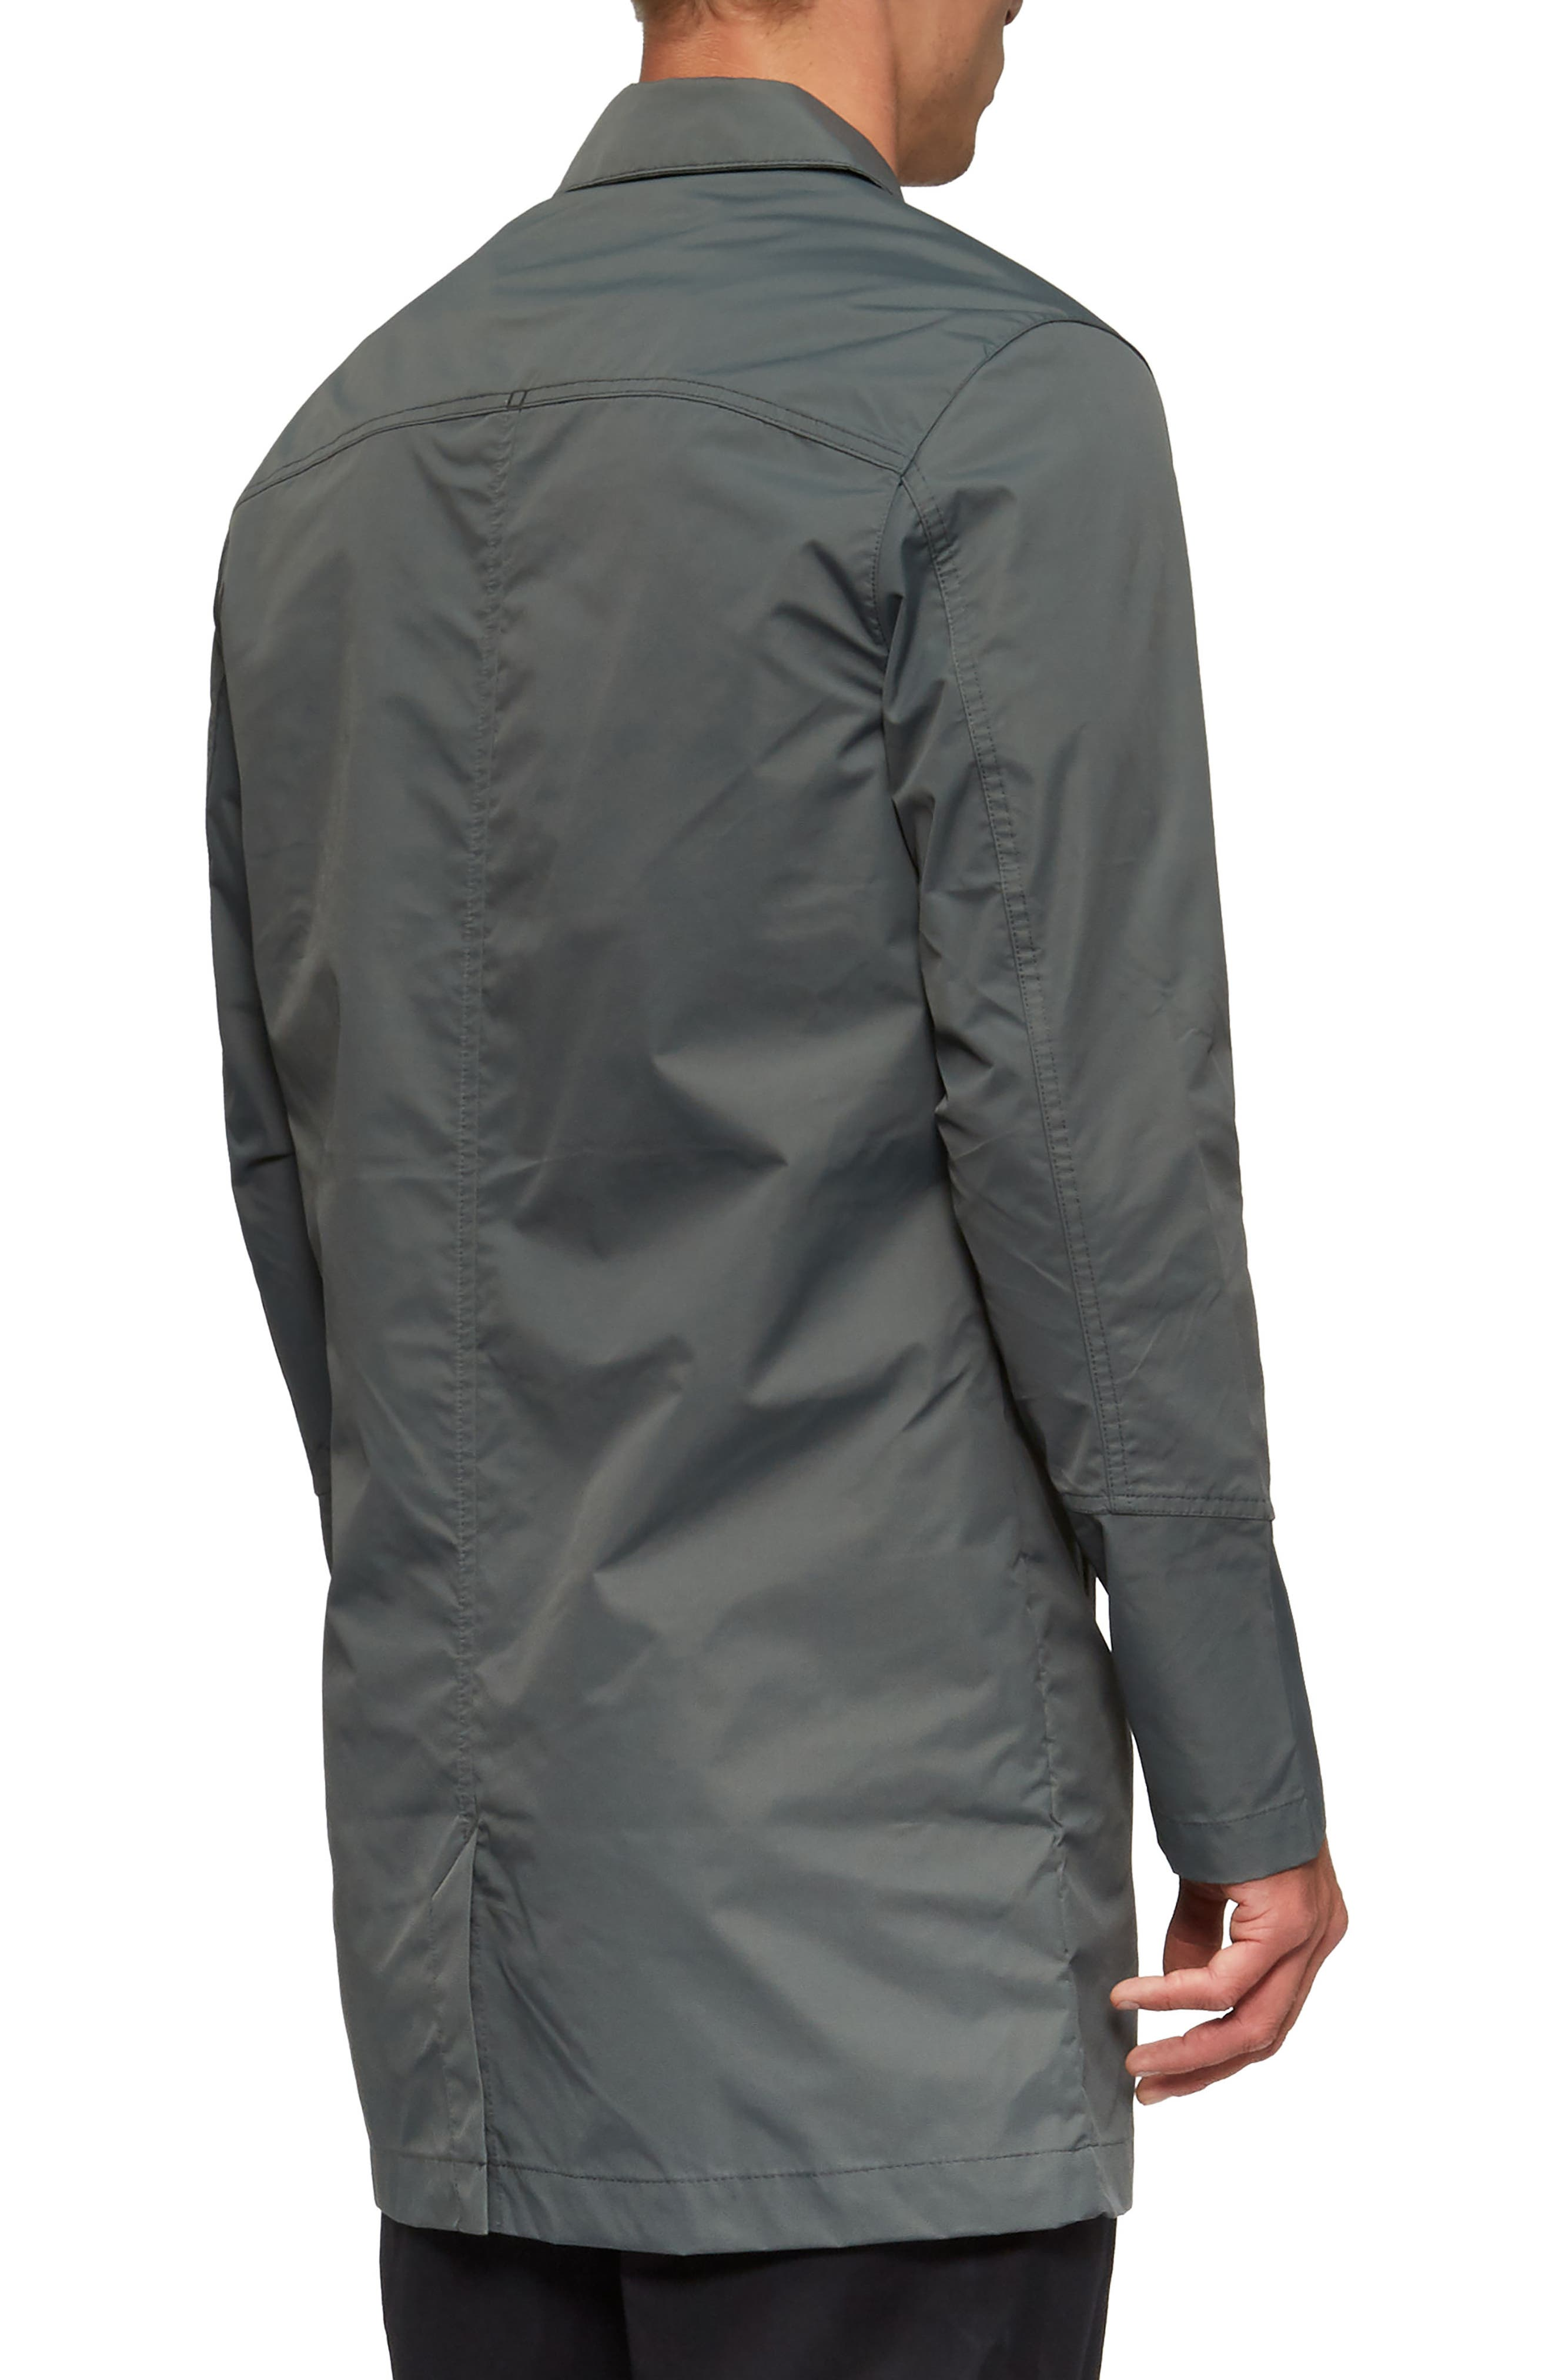 Deckard Weather Resistant Trench Coat,                             Alternate thumbnail 2, color,                             307